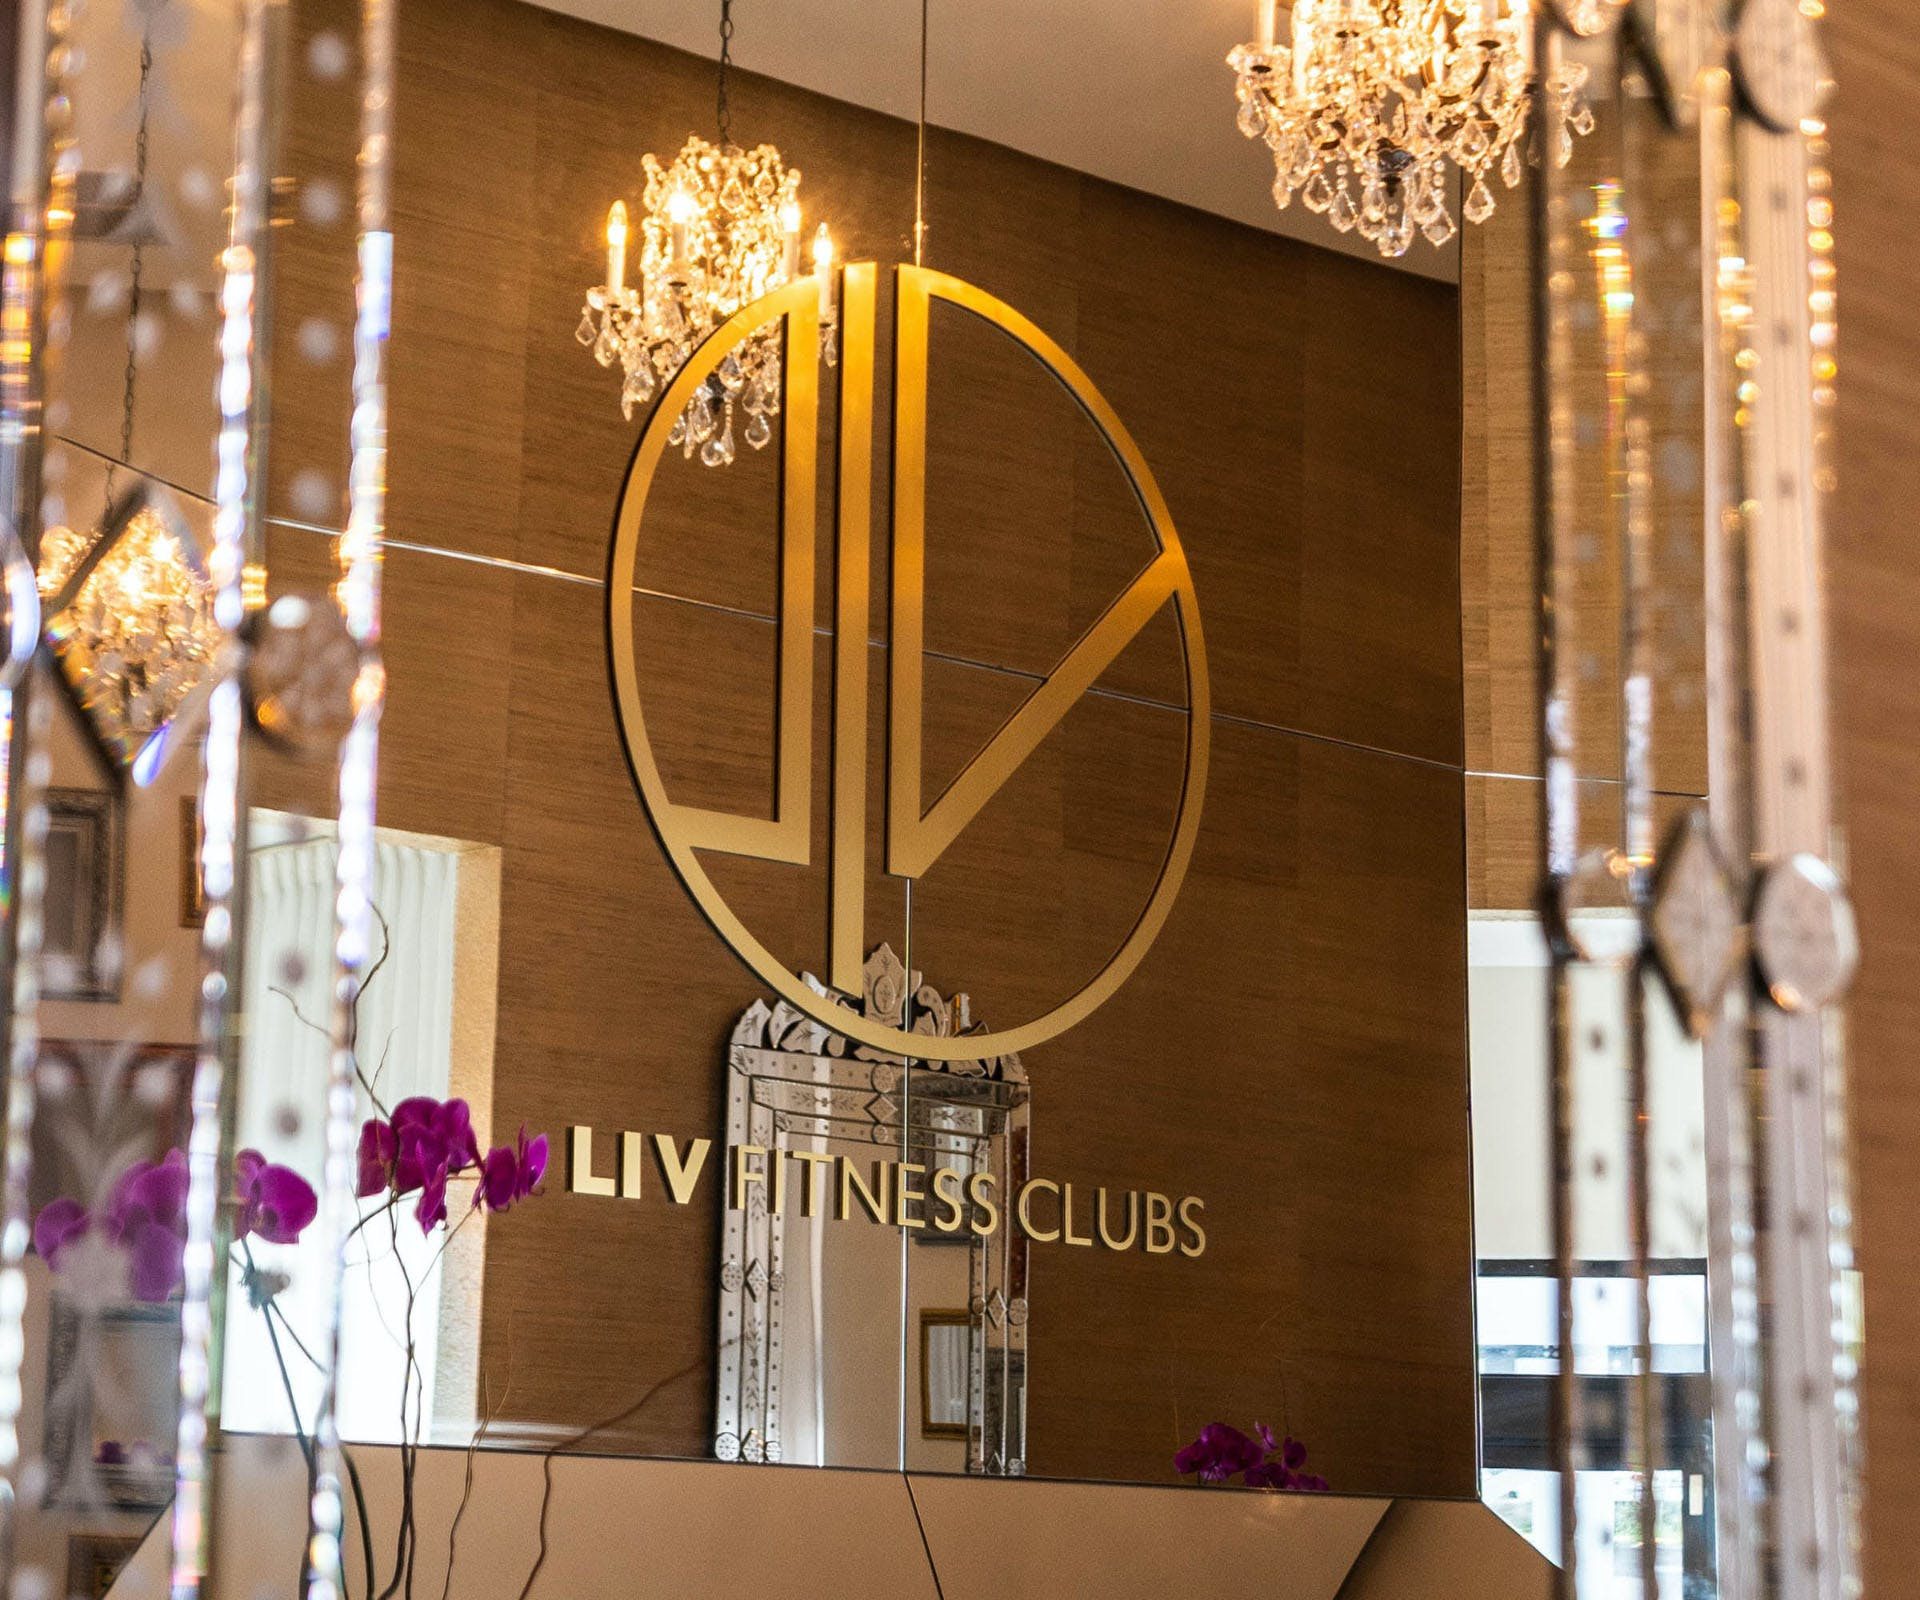 Luxury interior design of LIV Fitness Clubs in Guaynabo